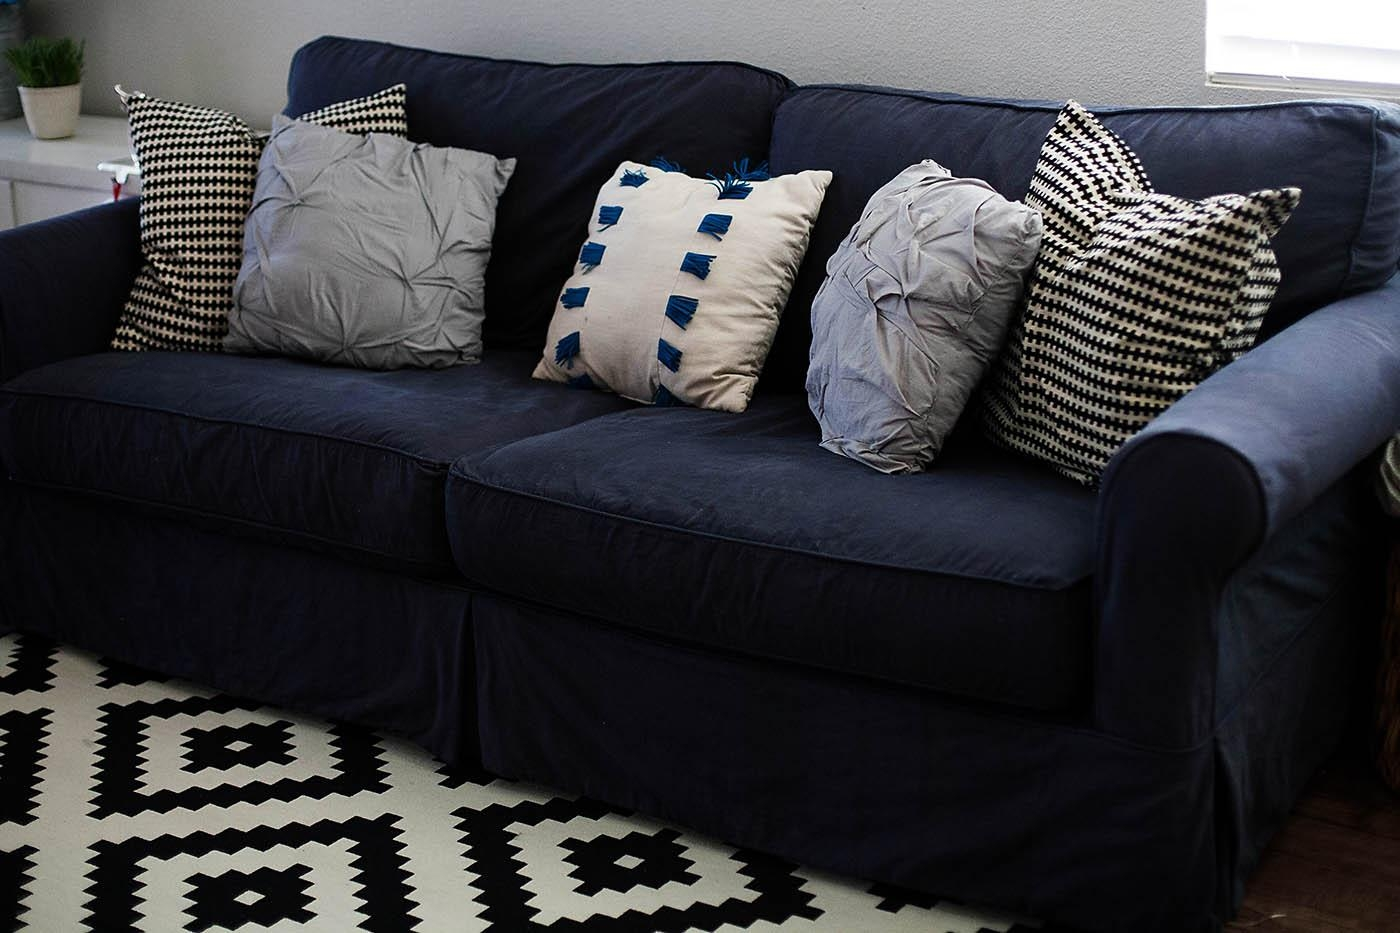 How To Dye A Sofa Slipcover With Regard To Blue Slipcovers (Image 10 of 20)